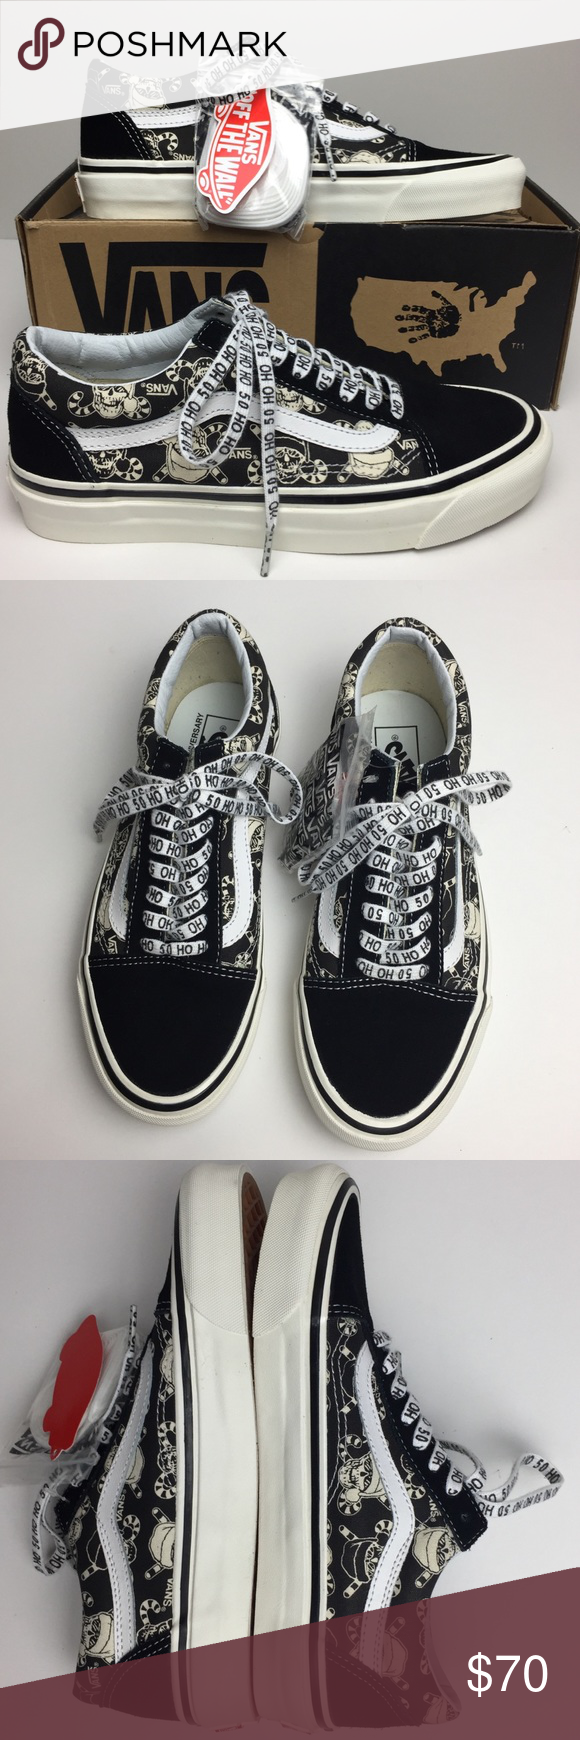 c67e9e3c7d Vans Old Skool 36 Reissue 50th STV Pirate Santa 50th Anniversary Limited  Edition. Awesome Pirate